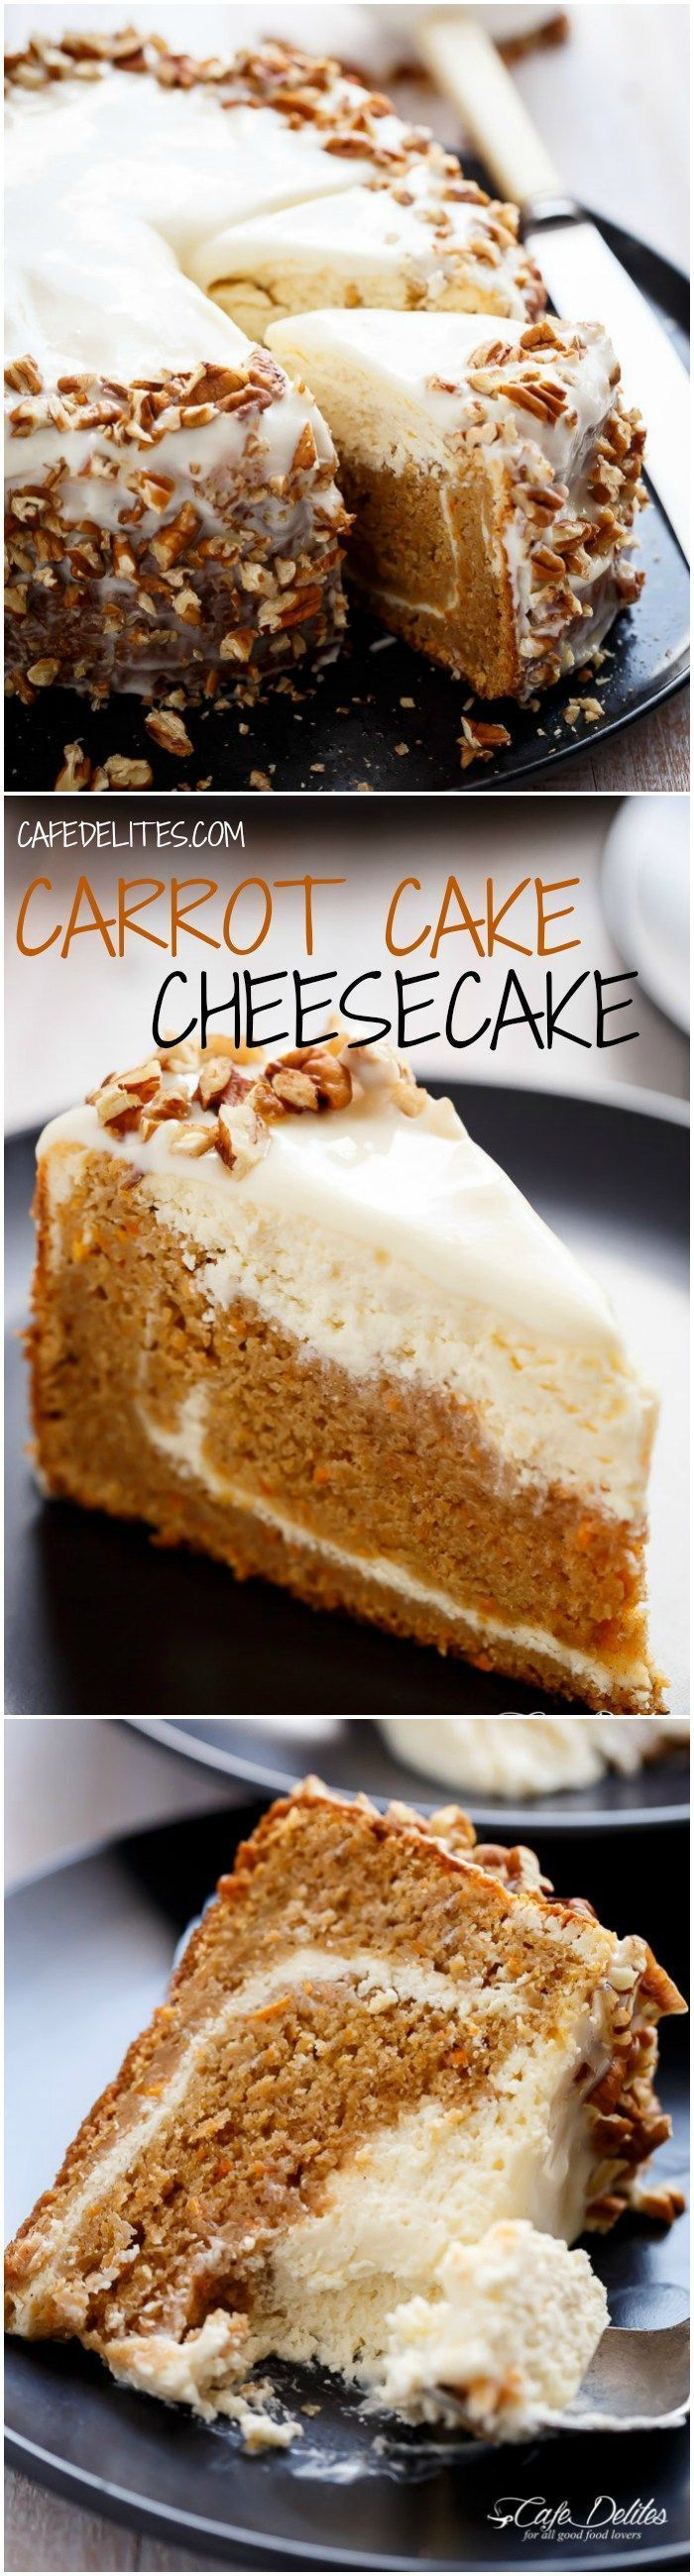 Carrot Cake Cheesecake to add to your Easter menu planning! A fluffy and super moist, lower in fat, lighter in calories carrot cake layered with a creamy, lemon scented cheesecake. The BEST of both worlds!